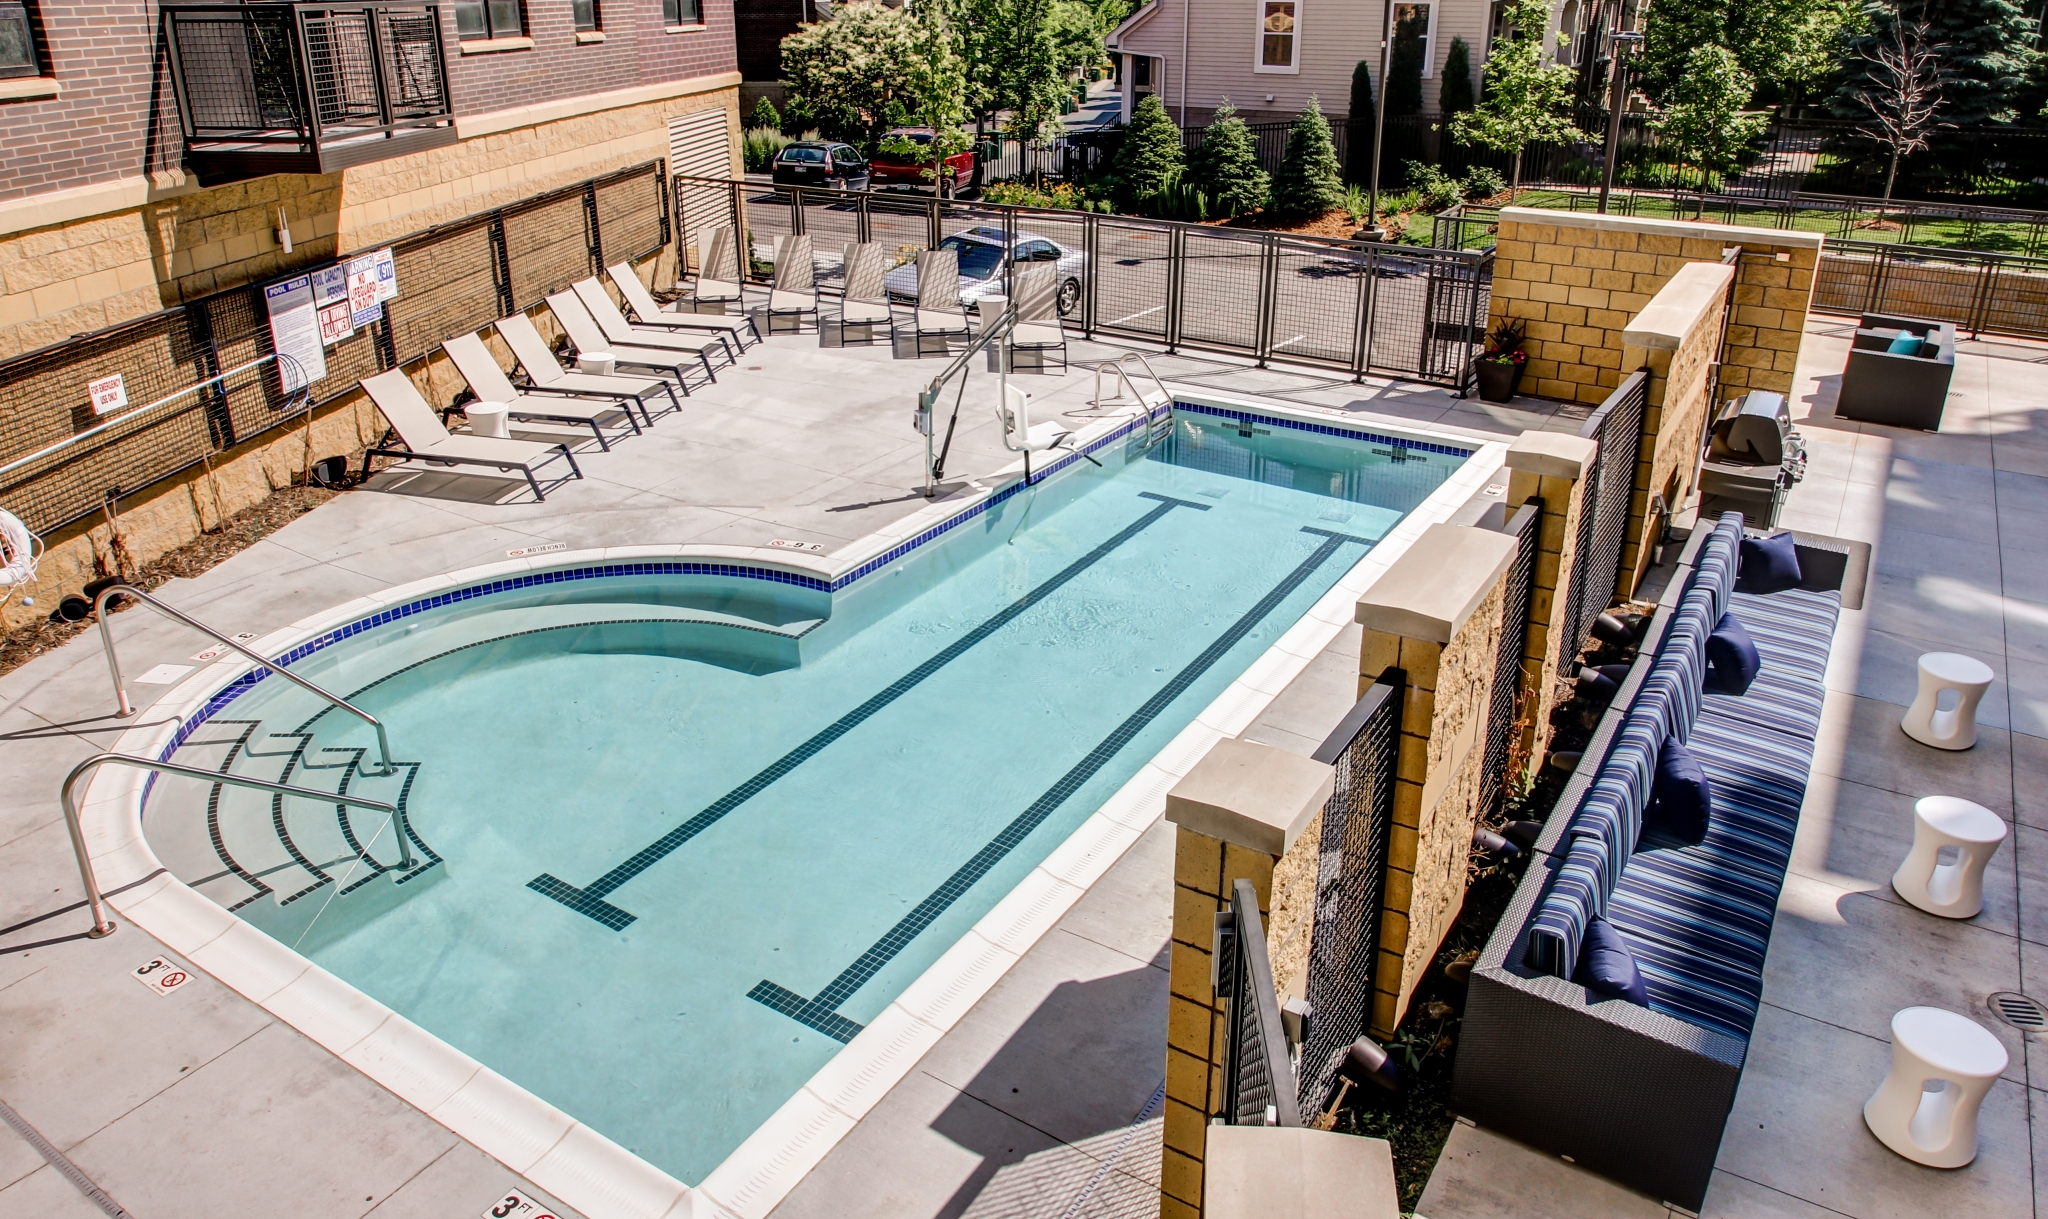 Image of The Paxon Pool for The Paxon